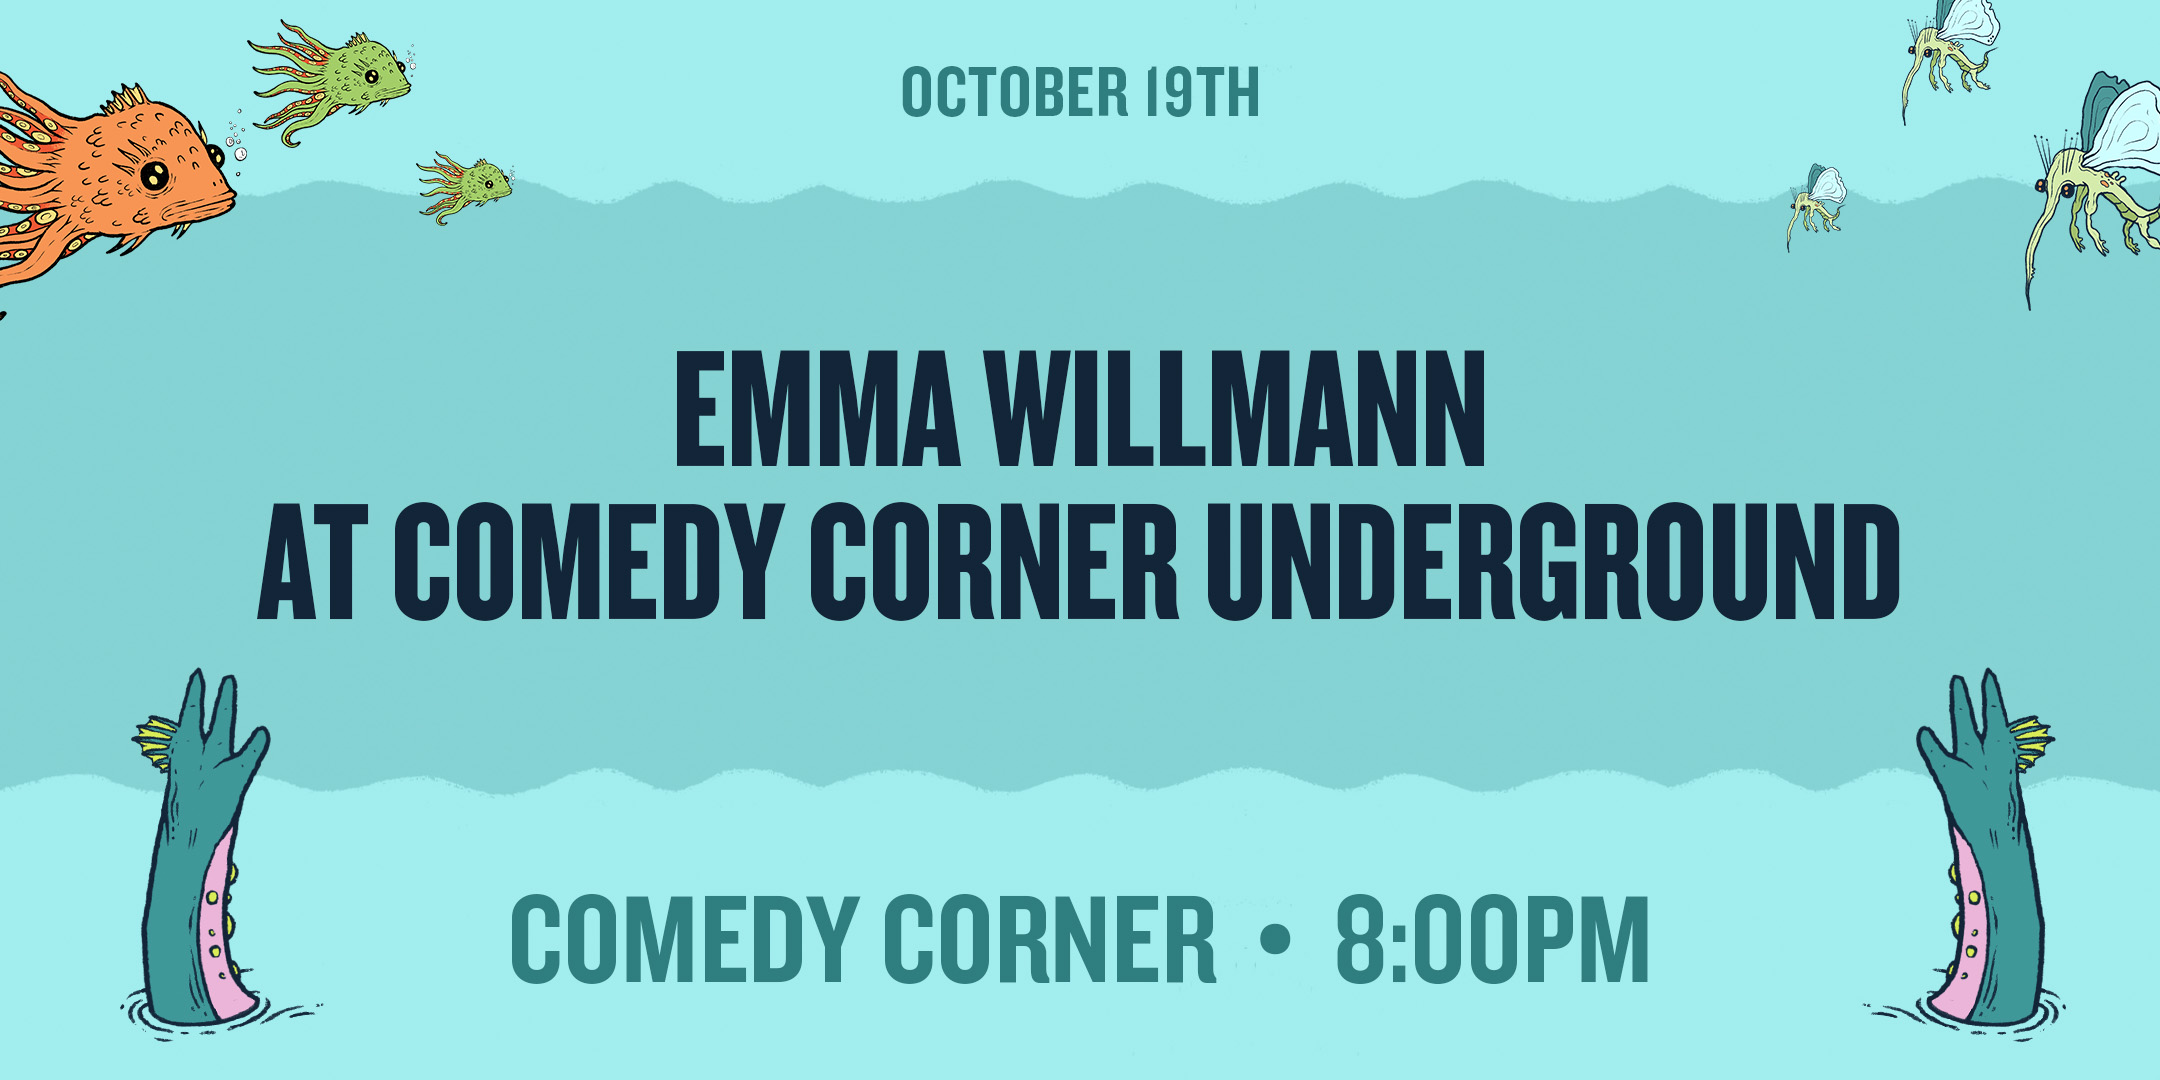 OCT19-Emma Willmann at CCU.jpg